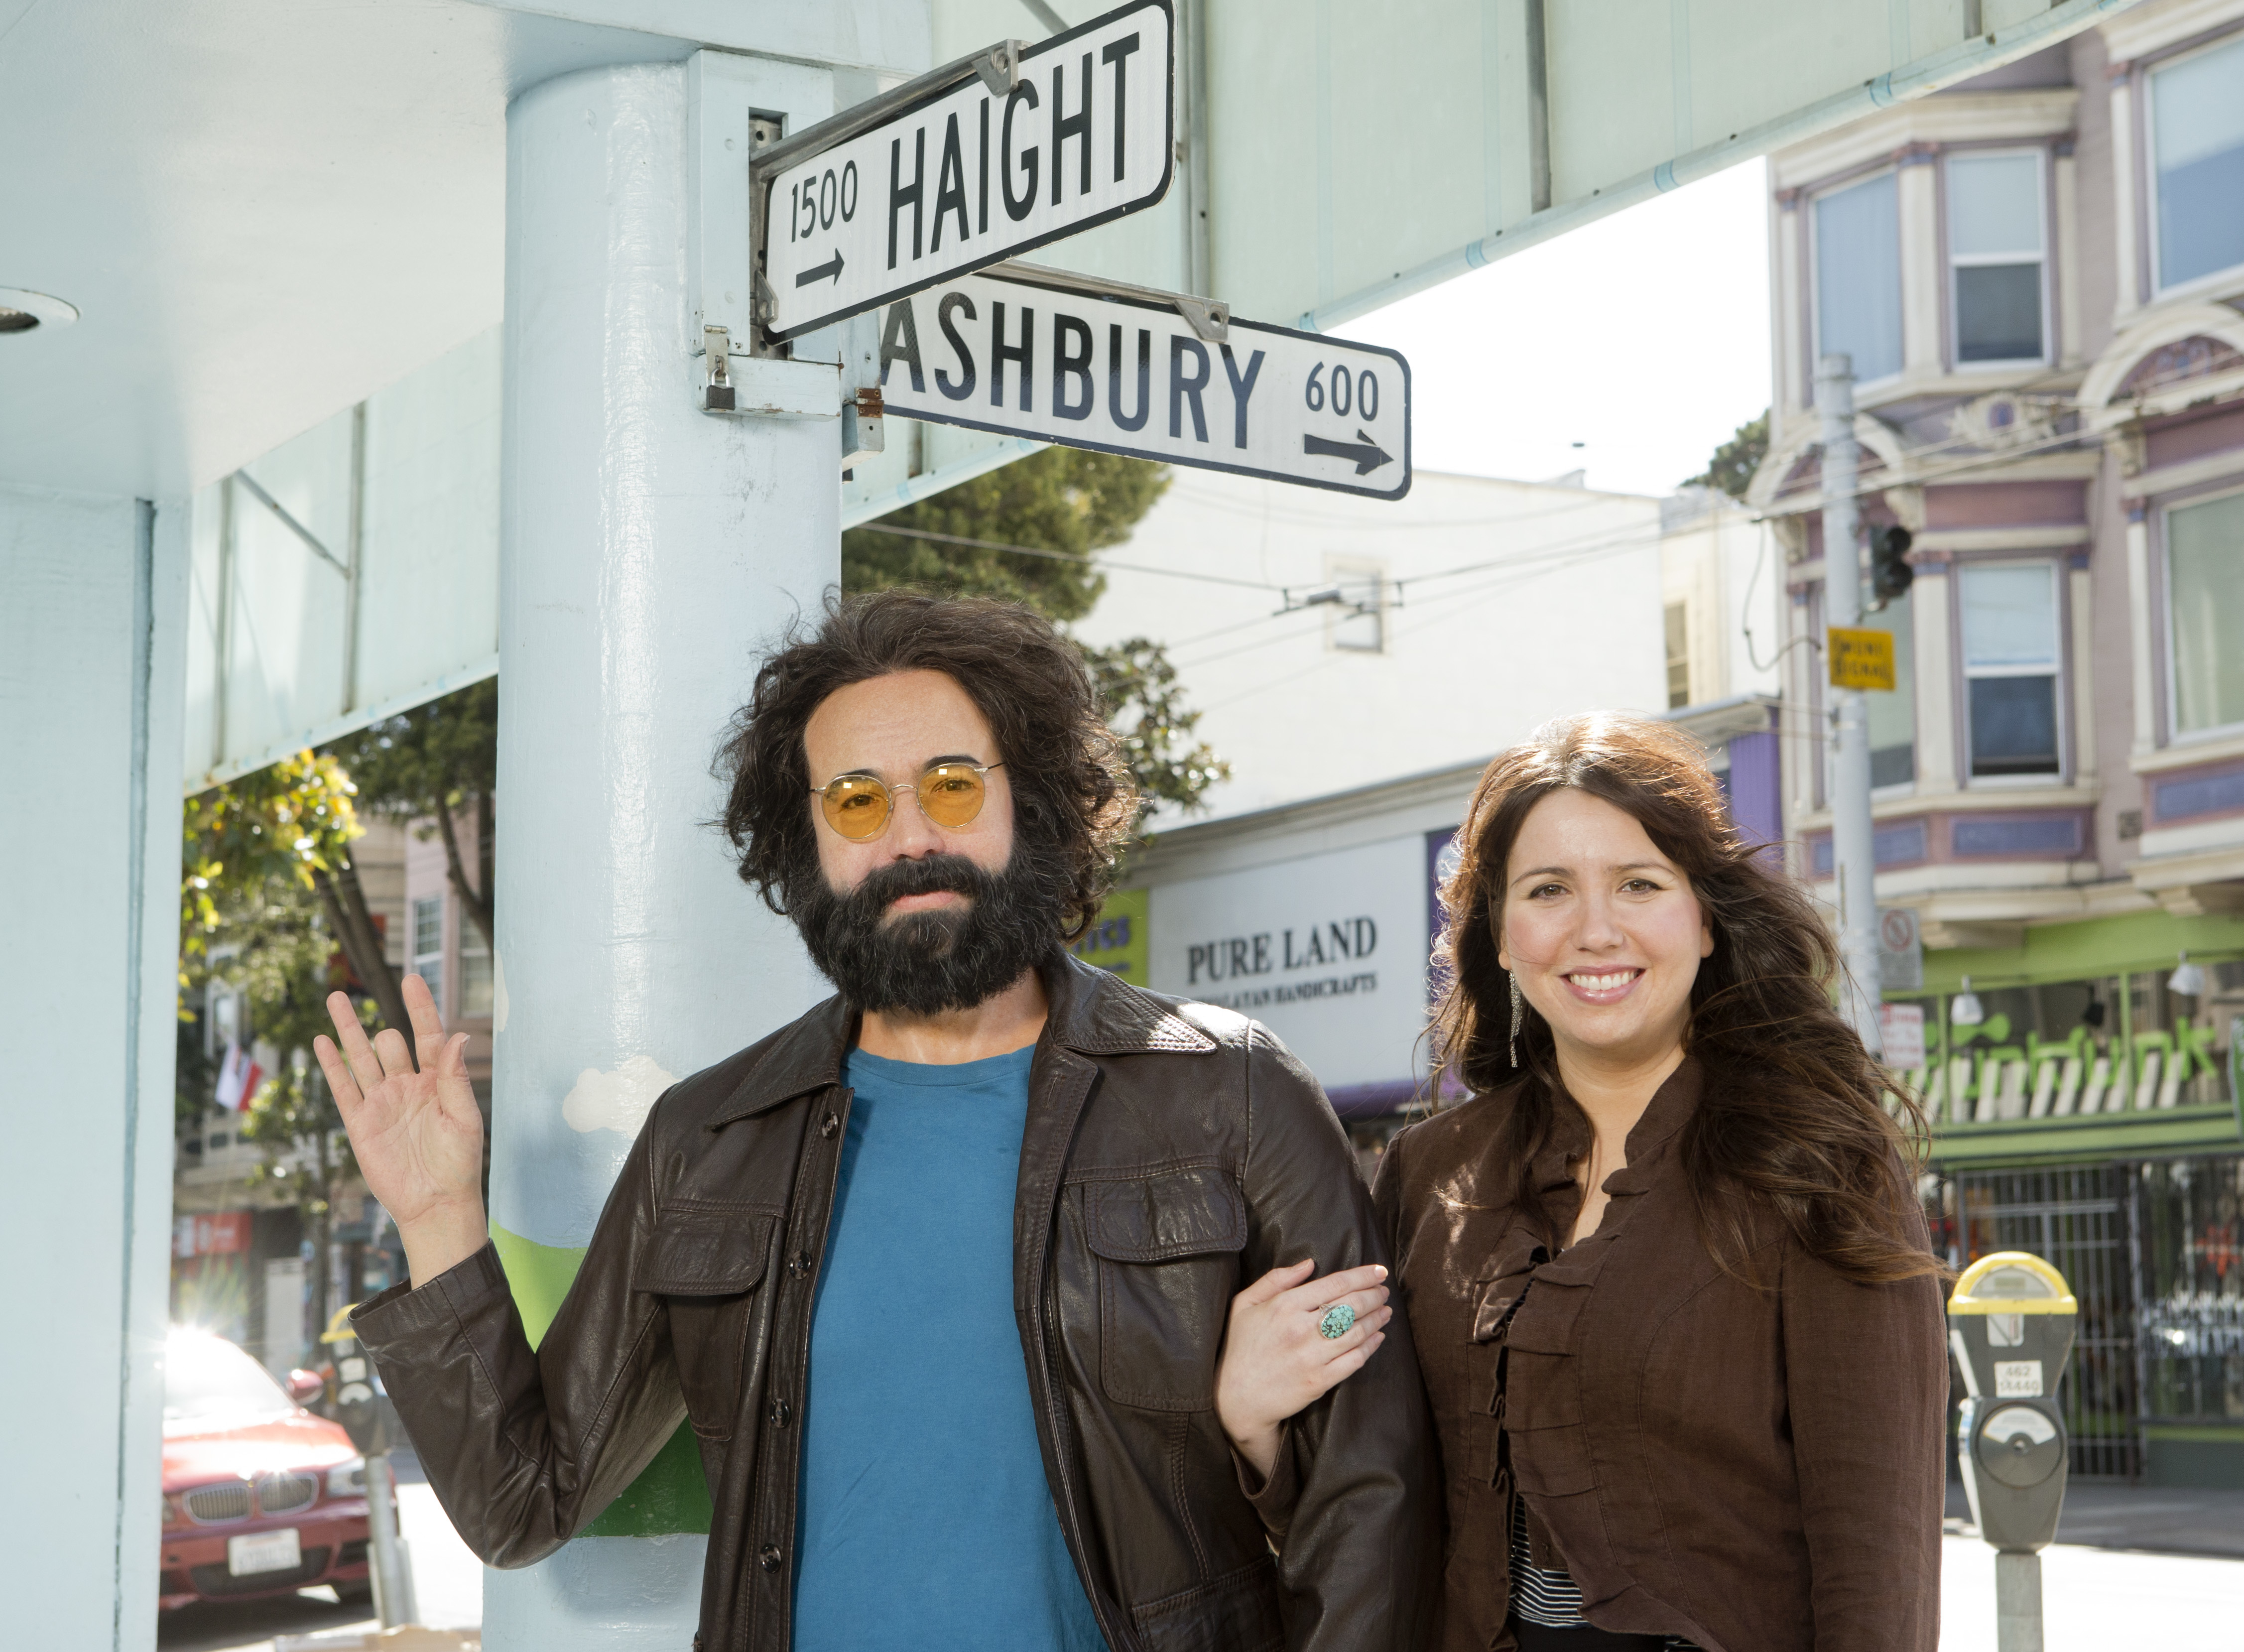 Keelin Garcia stands with a wax figure of her late father Jerry Garcia at the corner of Haight and Ashbury Streets in San Francisco, CA. (Beck Diefenbach / Madame Tussauds)